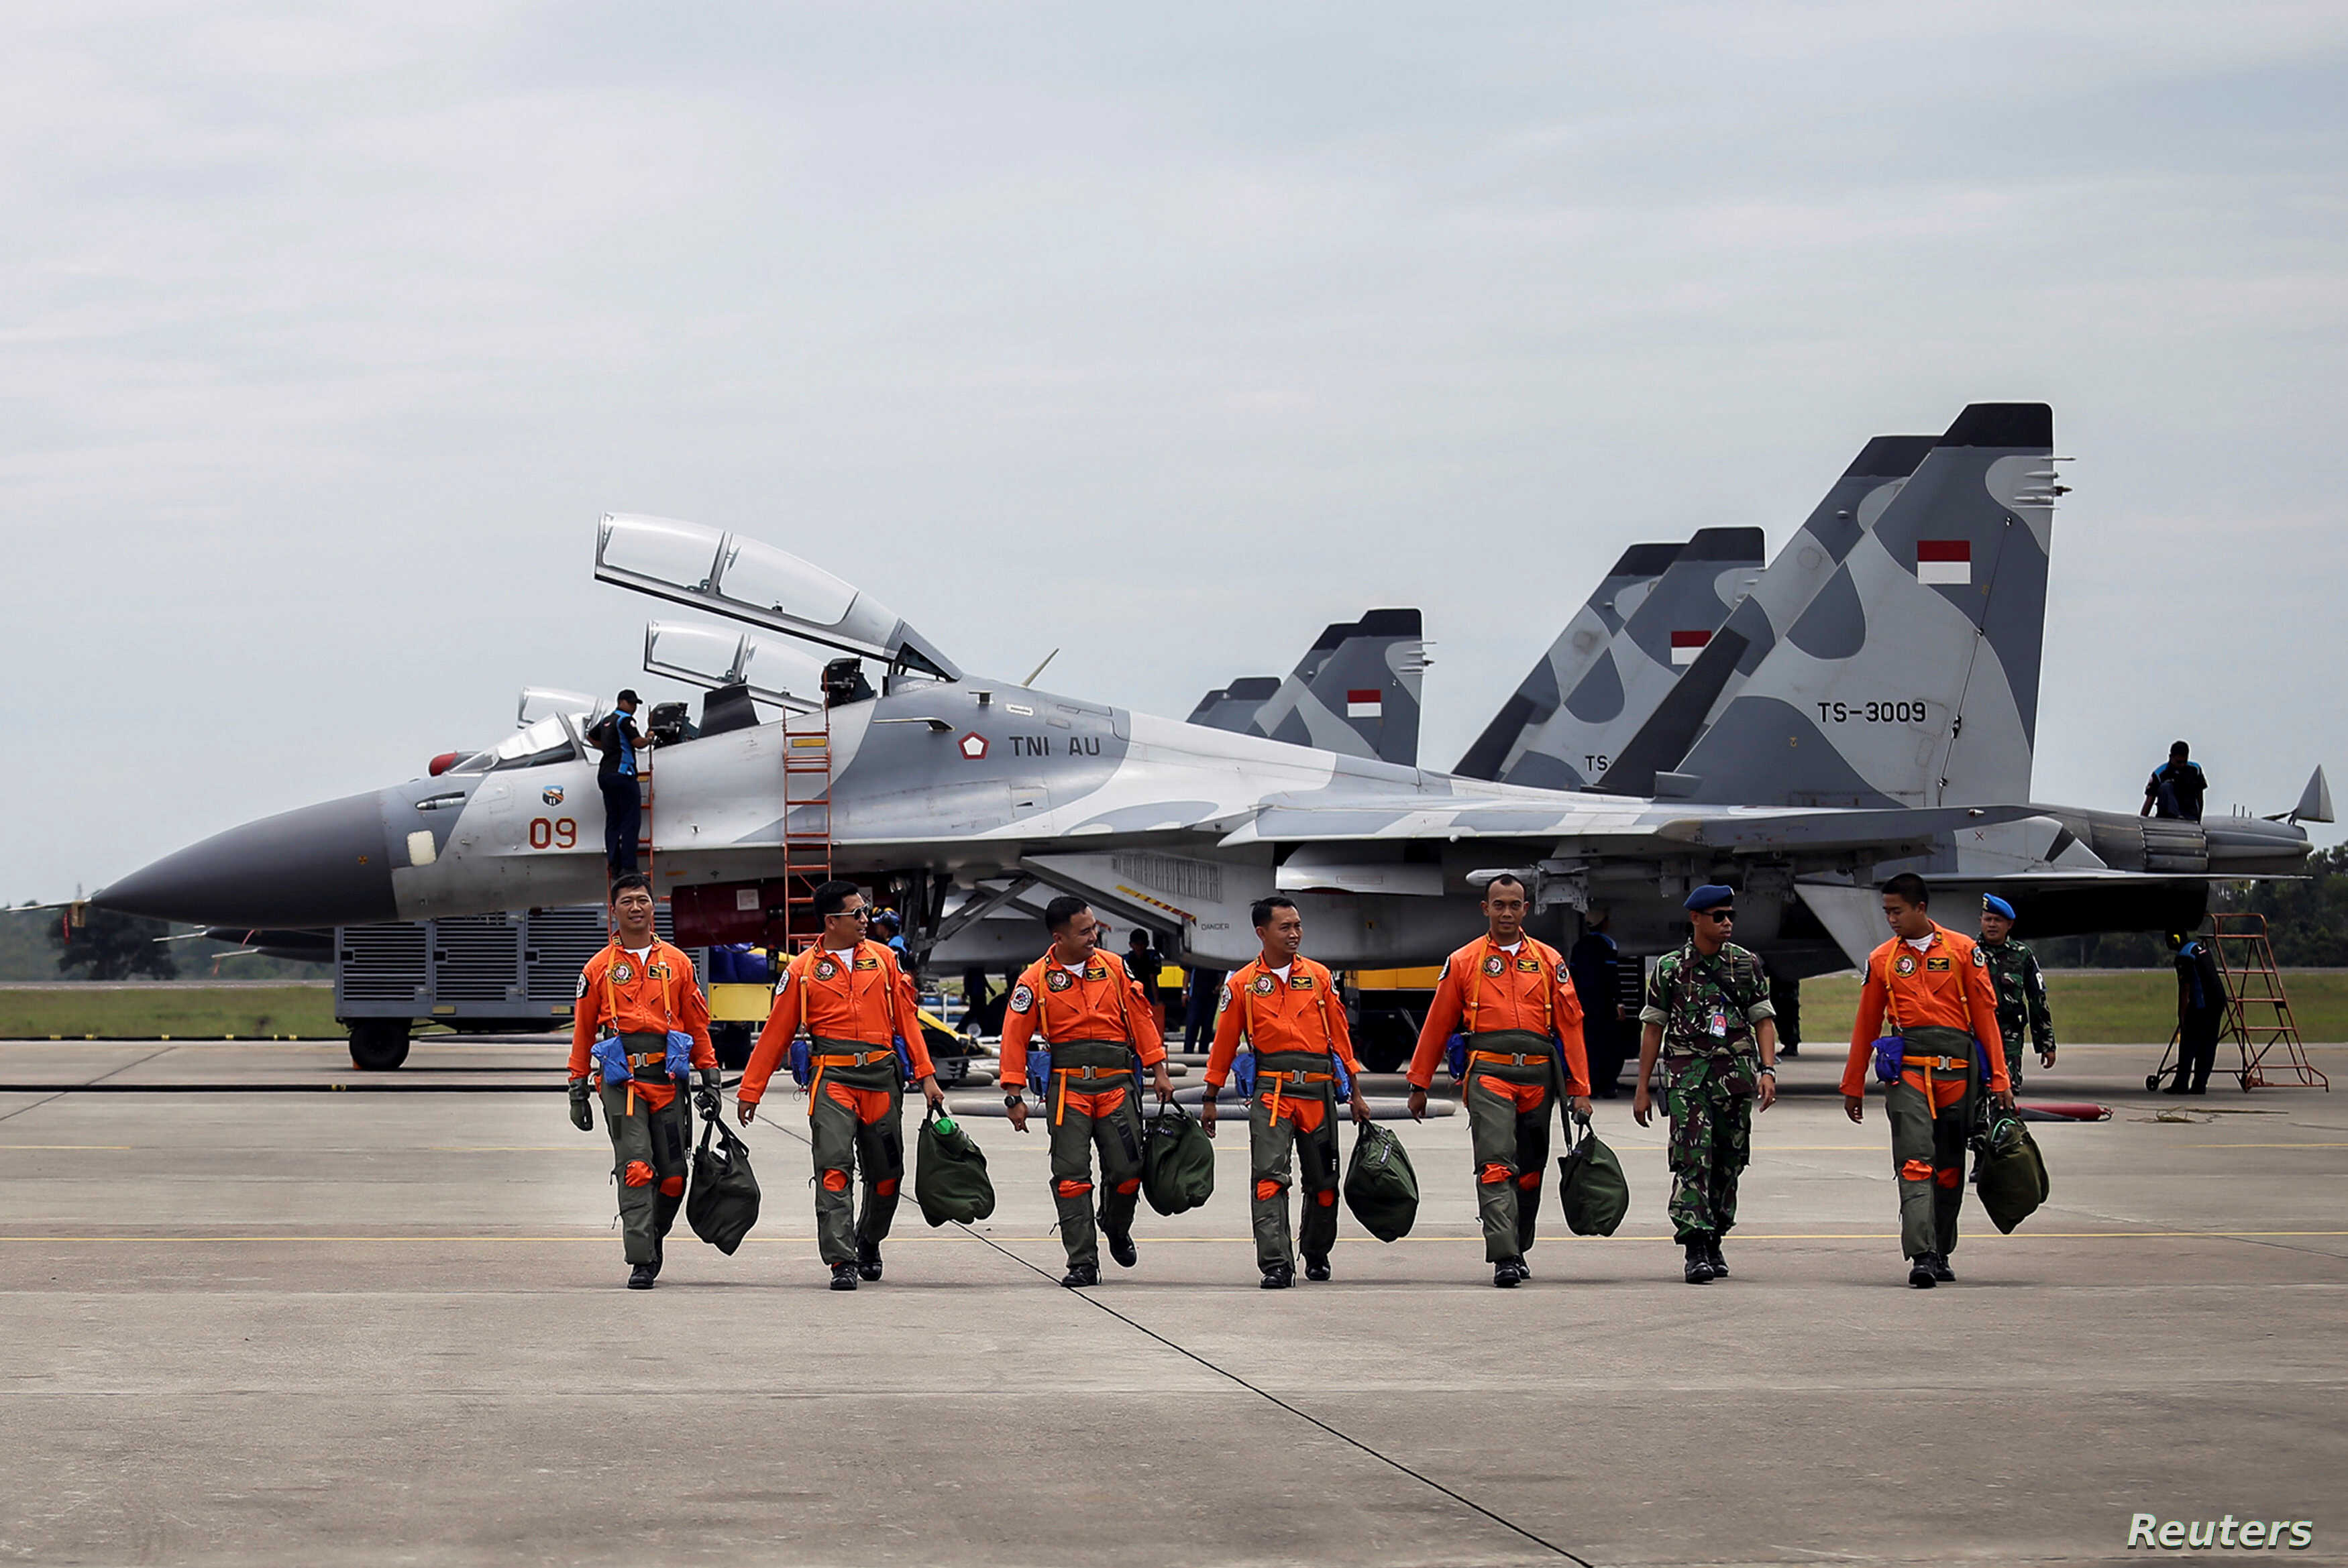 FILE -- Indonesian Air Force Sukhoi fighter pilots and crew walk across the tarmac at the Hang Nadim Airport after training for an upcoming military exercise, October 3, 2016.